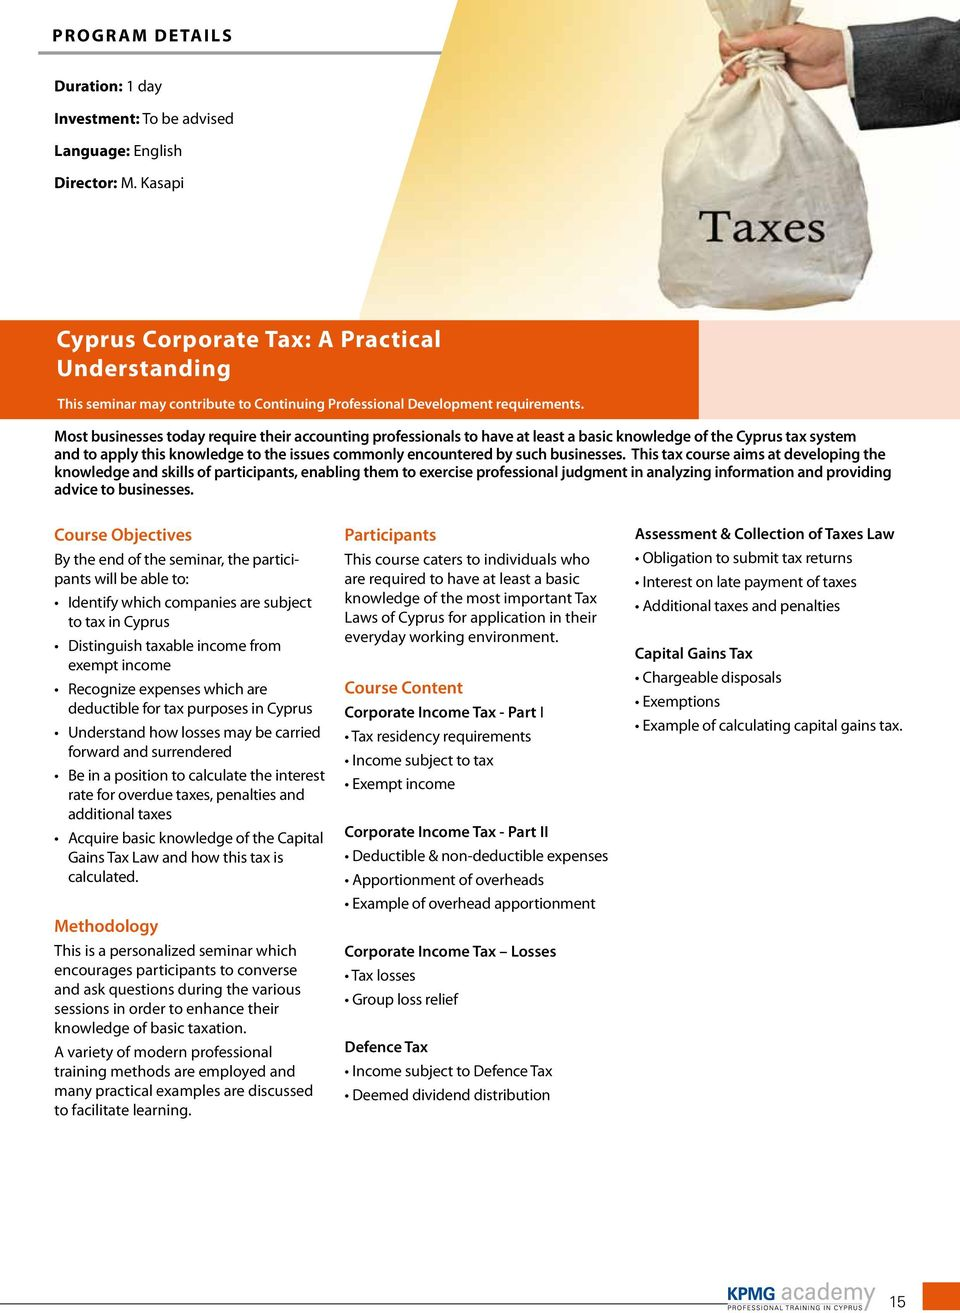 Most businesses today require their accounting professionals to have at least a basic knowledge of the Cyprus tax system and to apply this knowledge to the issues commonly encountered by such